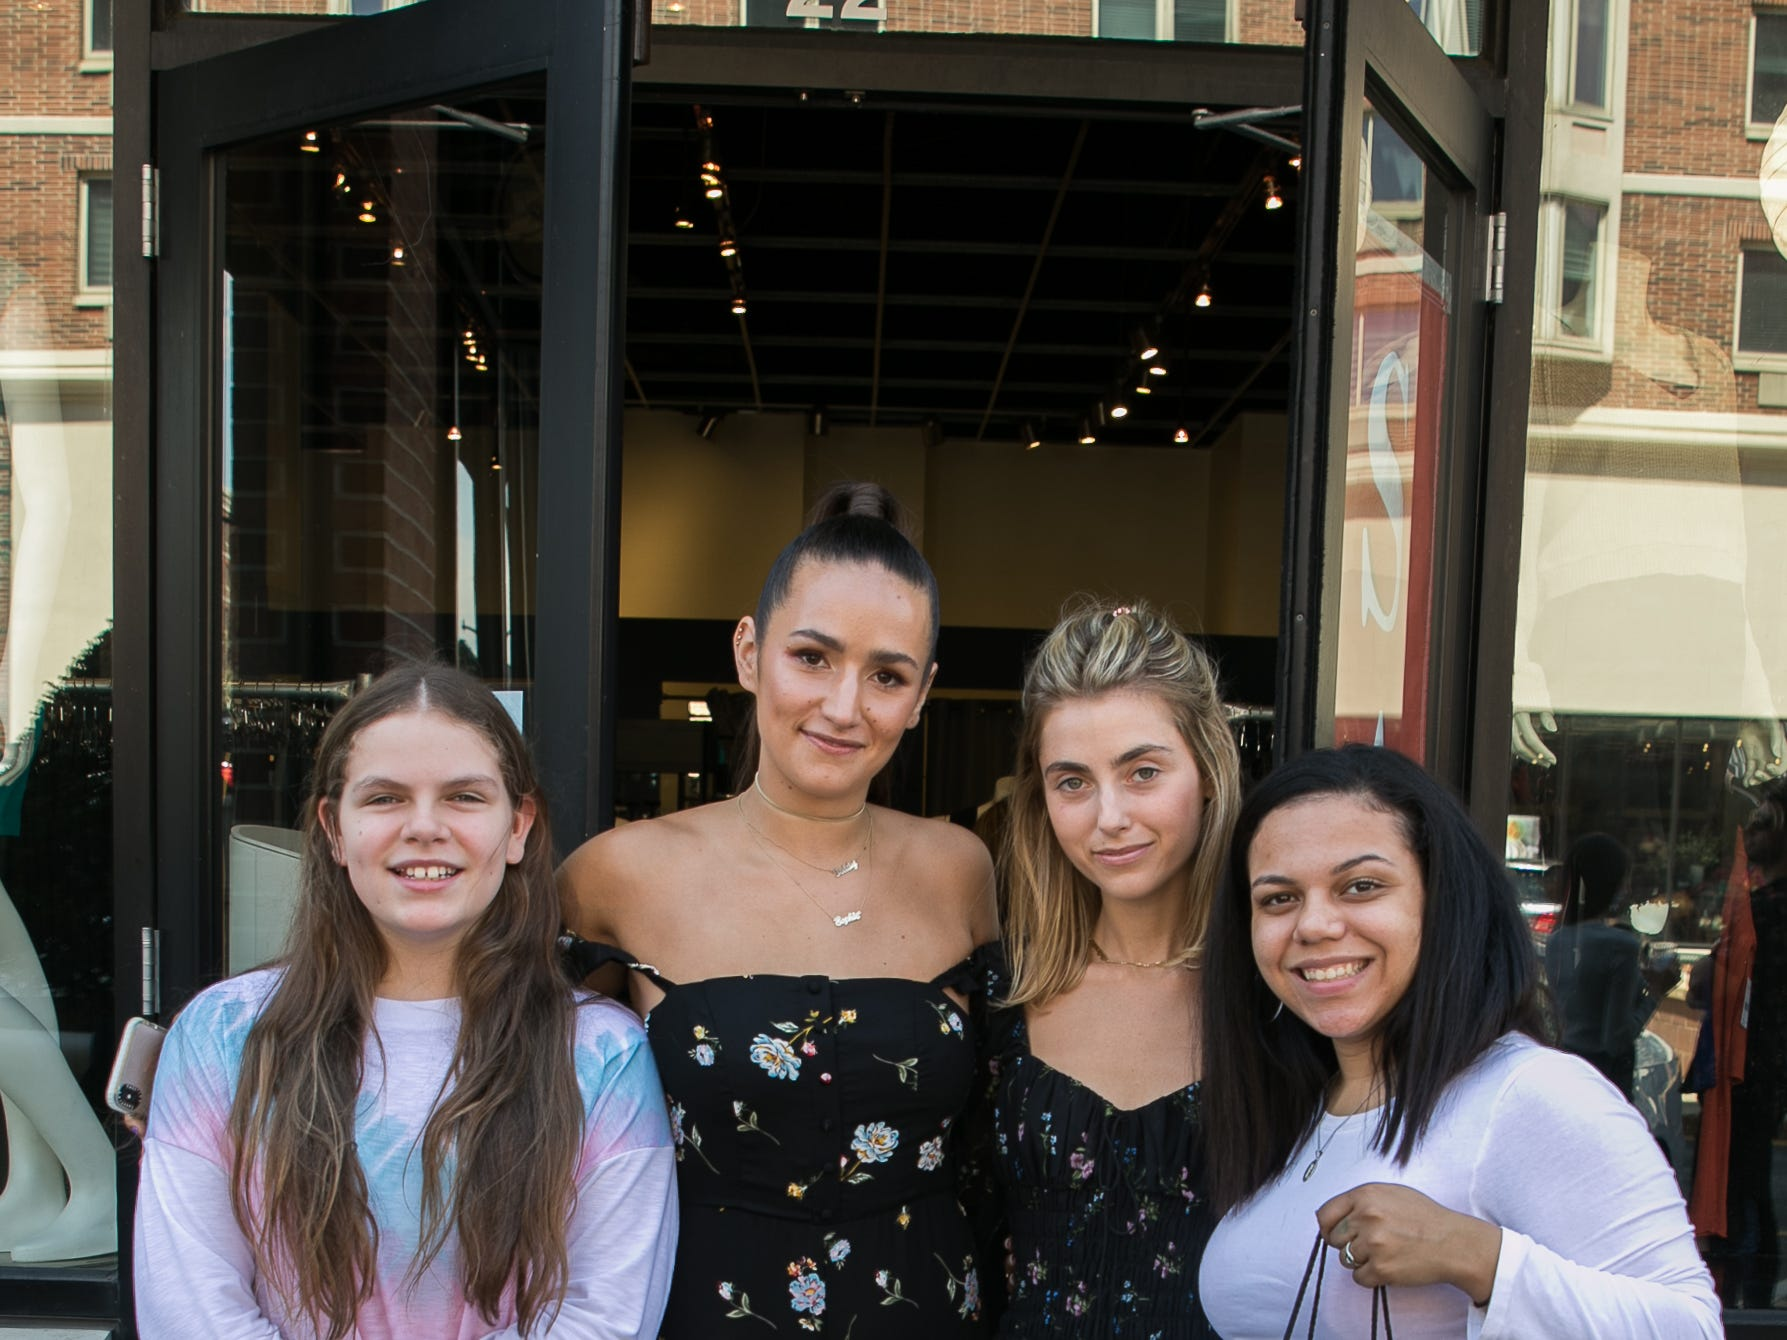 Maryanne DeLeo. Sophie and Charlotte Bickley, Caitlin Cruz. Instagram fashion stylists sisters Sophie and Charlotte Bickley visited Ambience Boutique in Edgewater. 04/13/2019